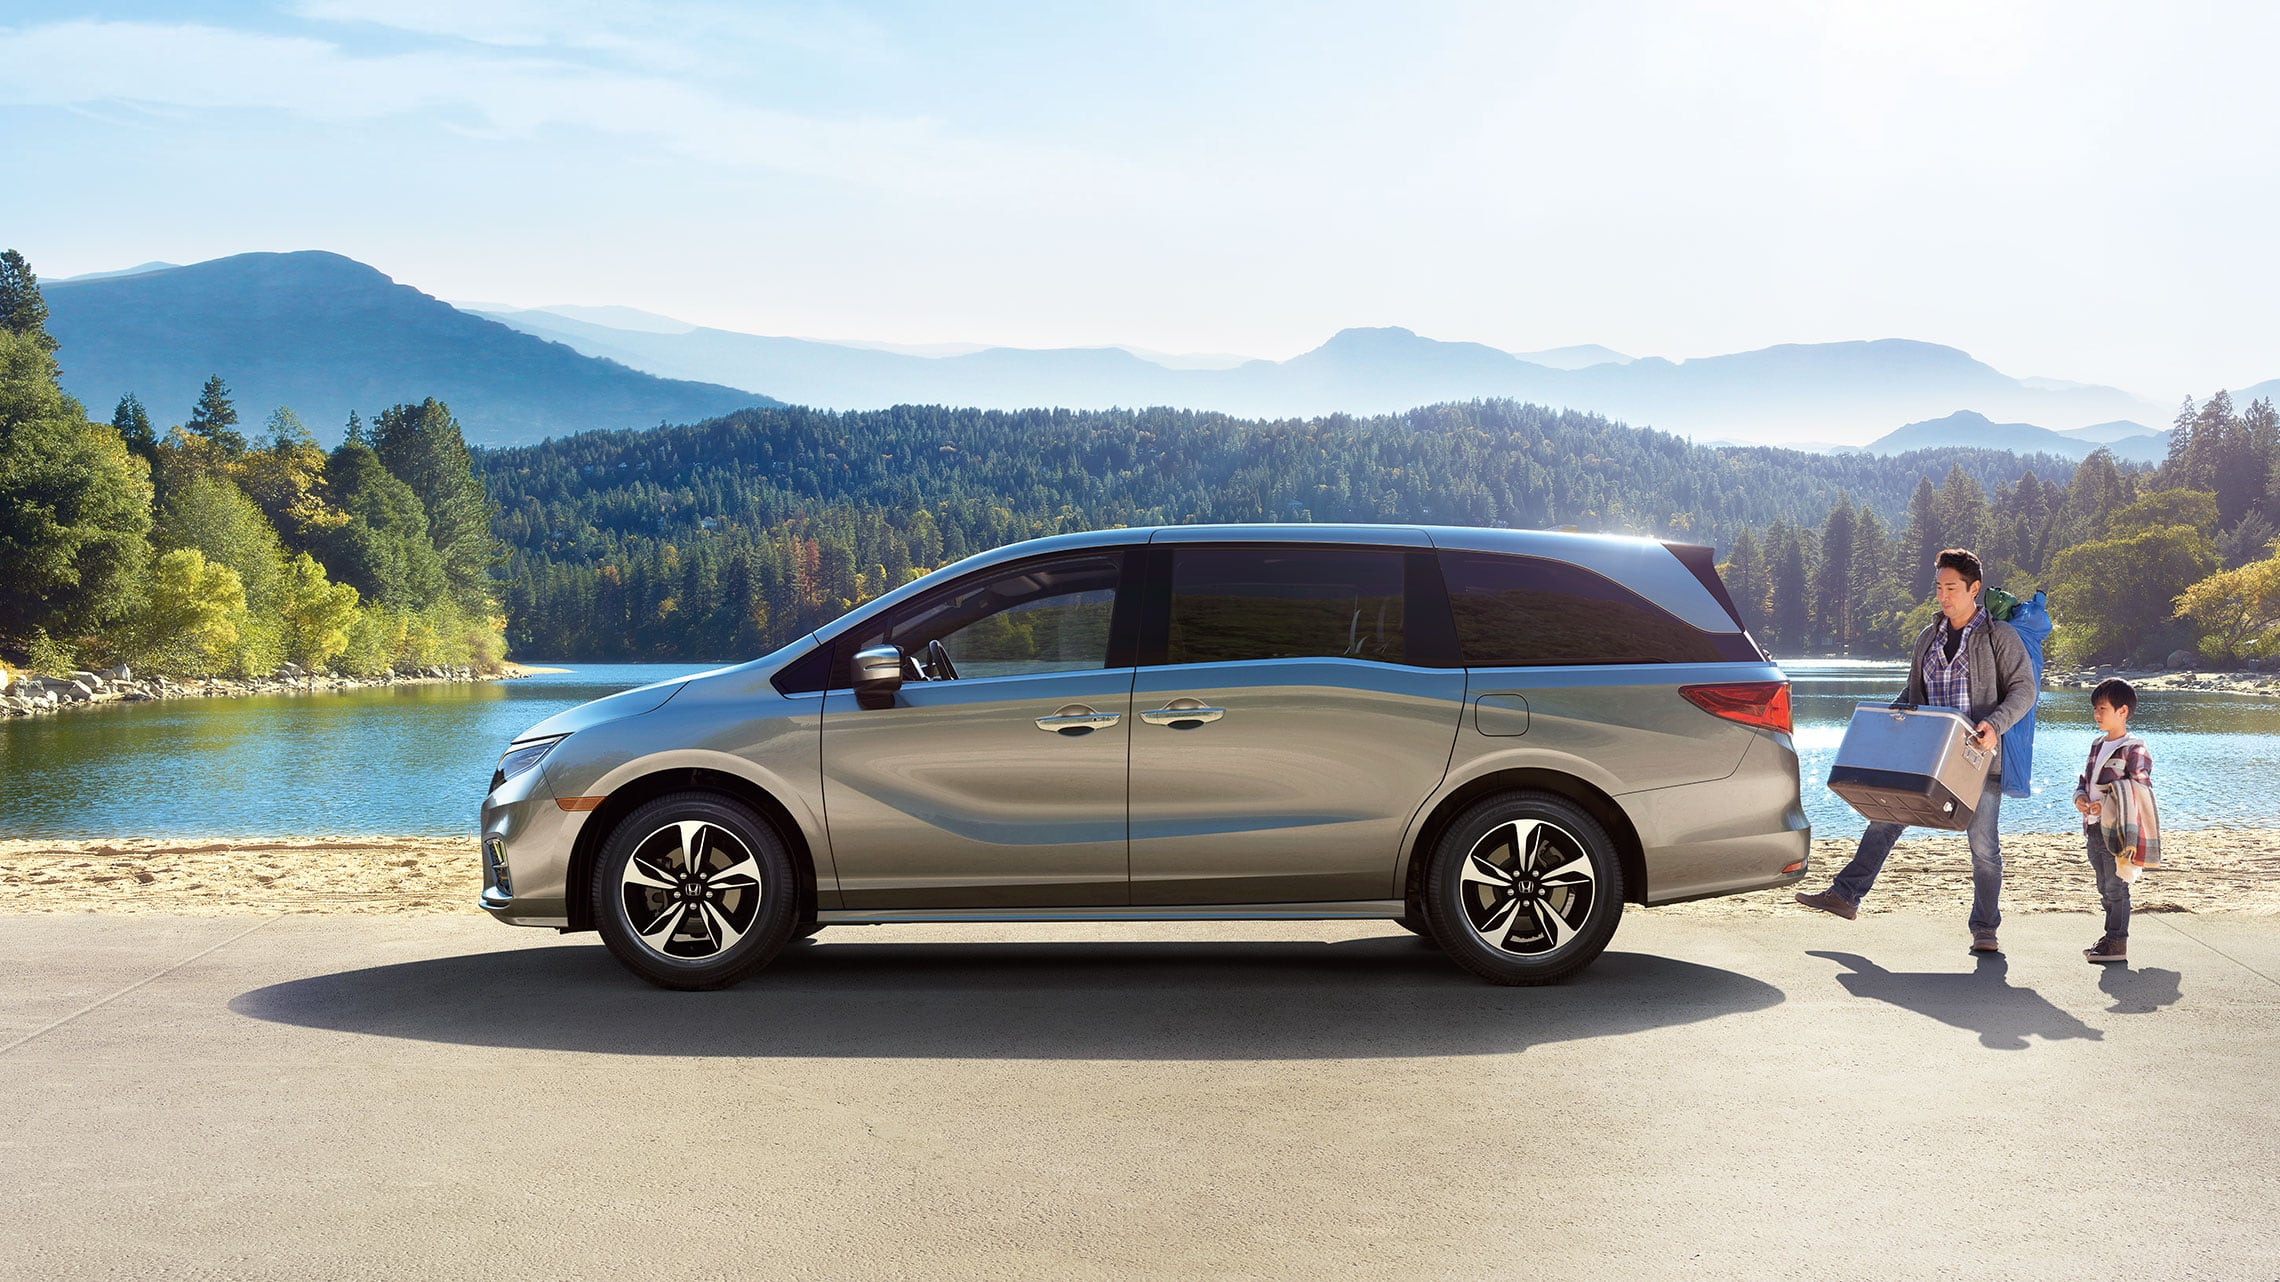 Driver-side profile view of 2020 Honda Odyssey Touring in Lunar Silver Metallic parked in forest environment.